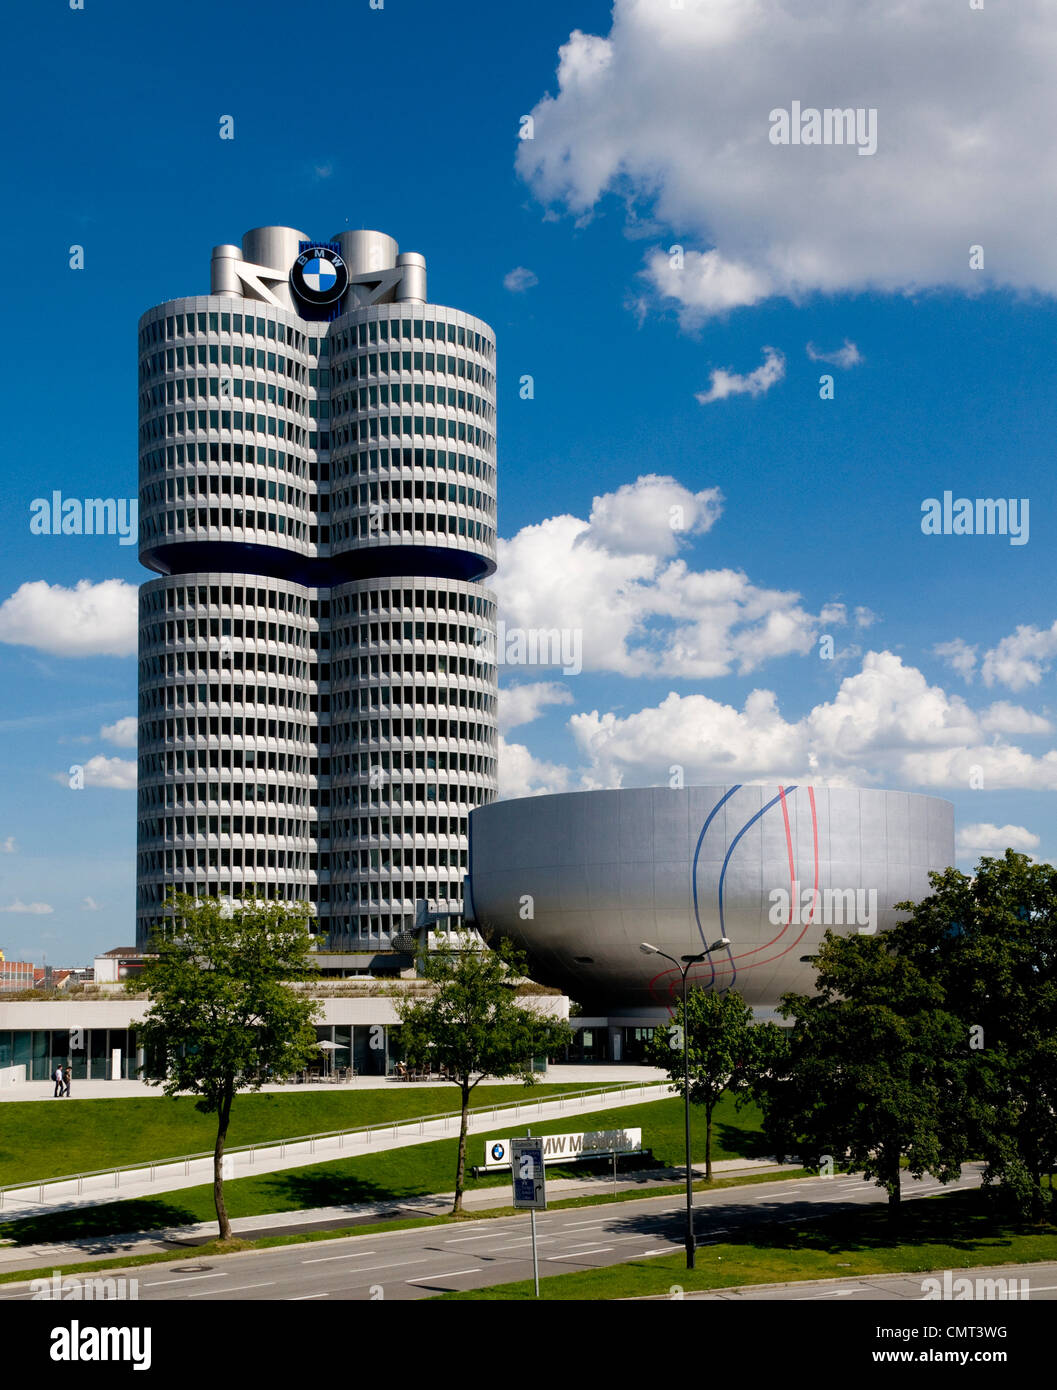 BMW Museum in Olympiapark, Munich, Germany - Stock Image